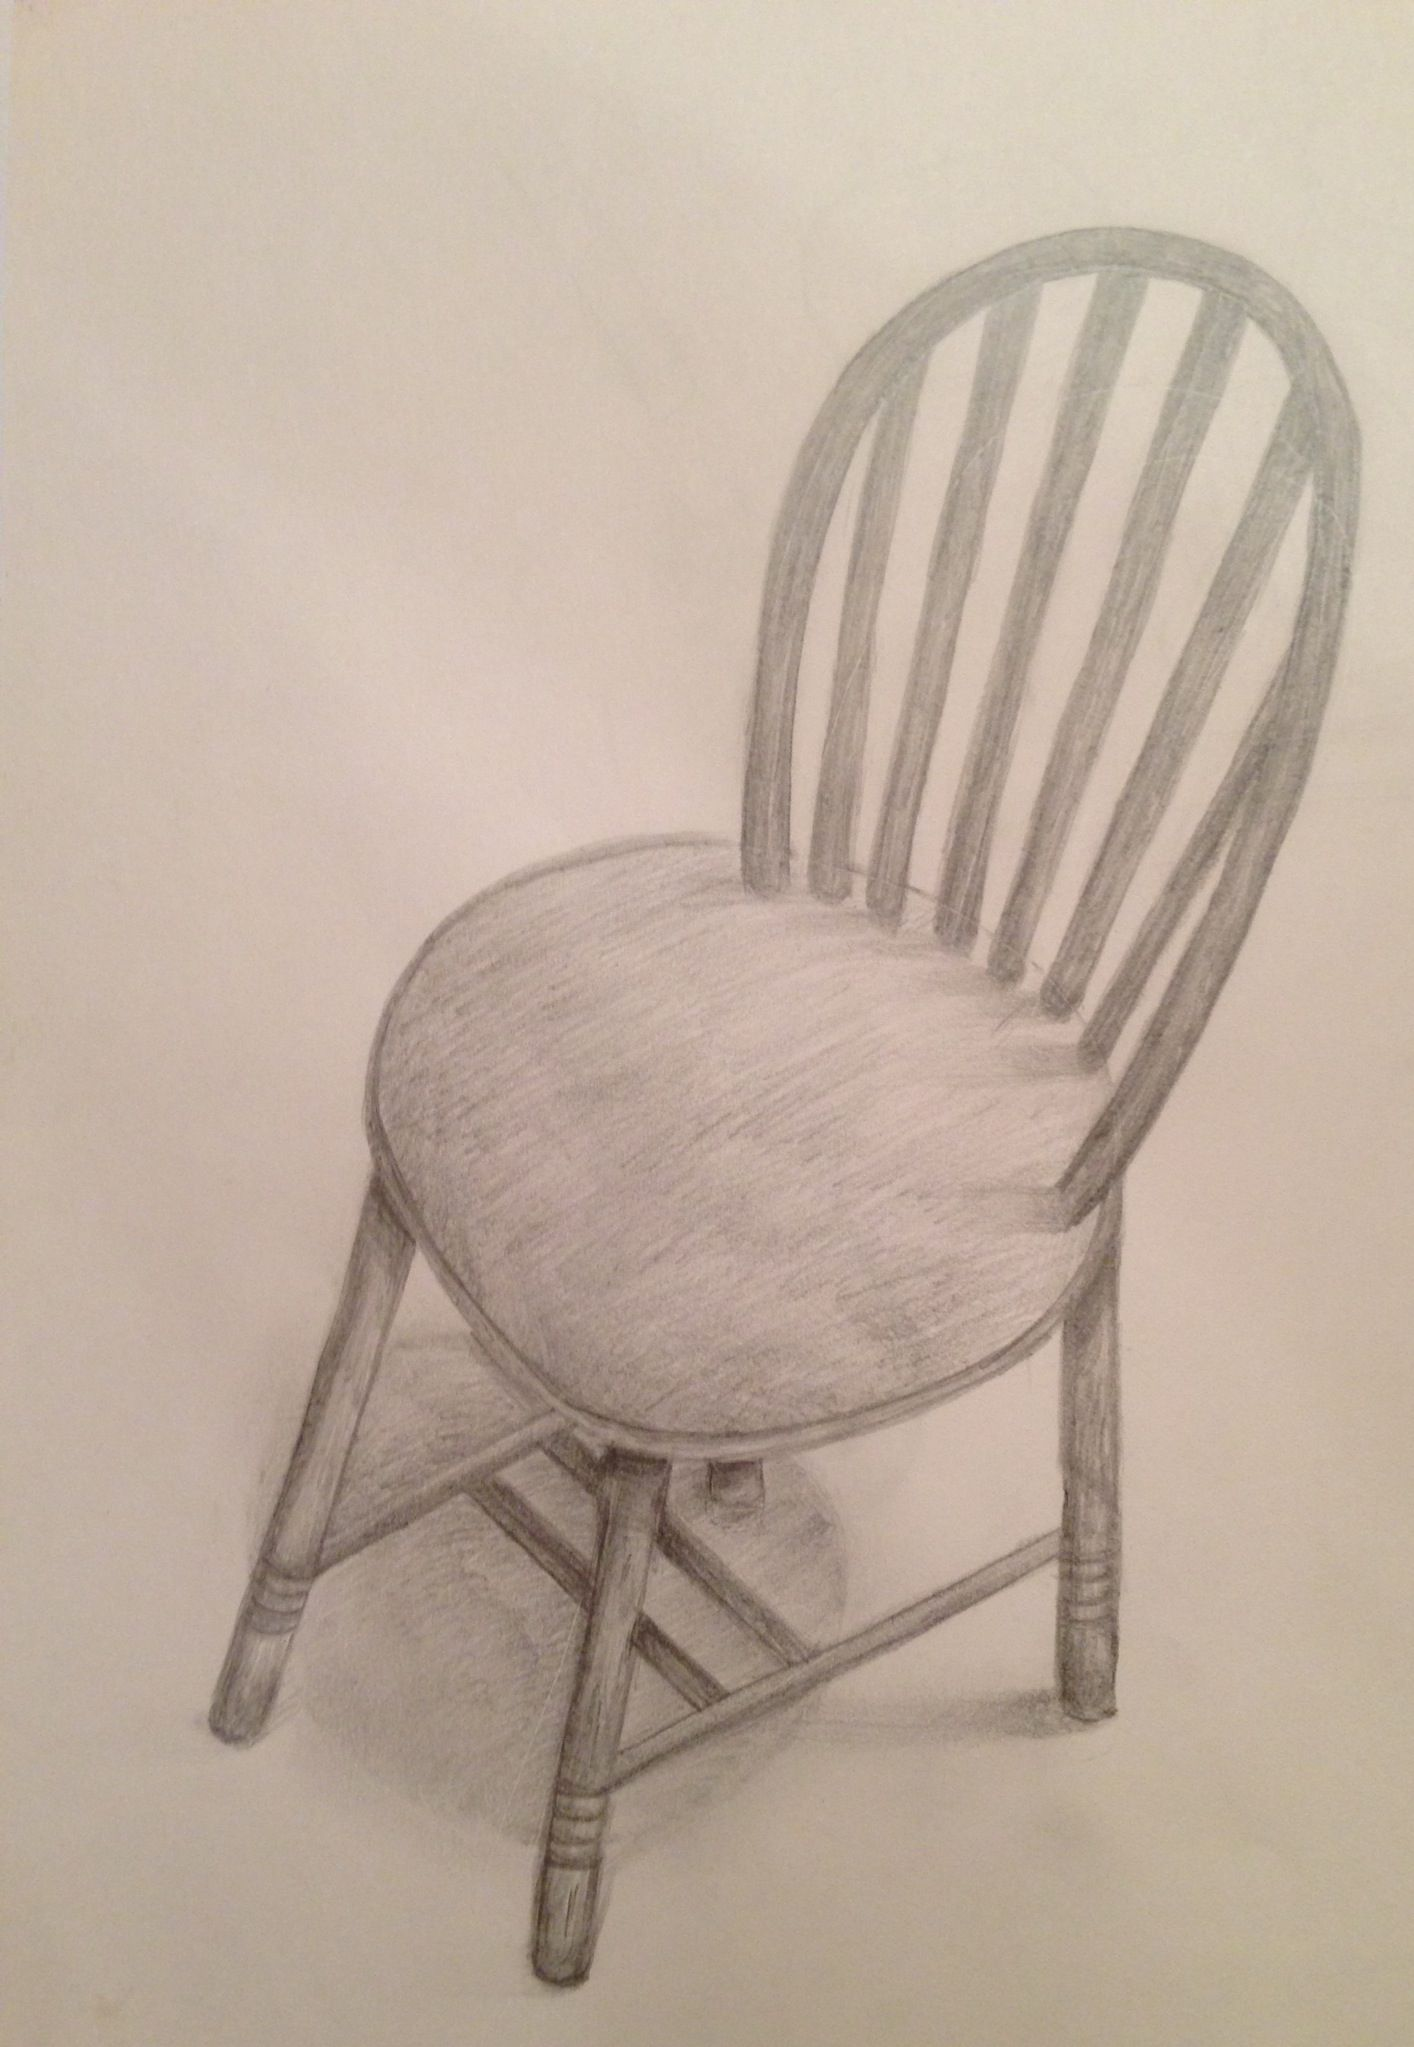 Chair Sketch Chair Art Design Amazing Pencil Drawing Chair Decor Design